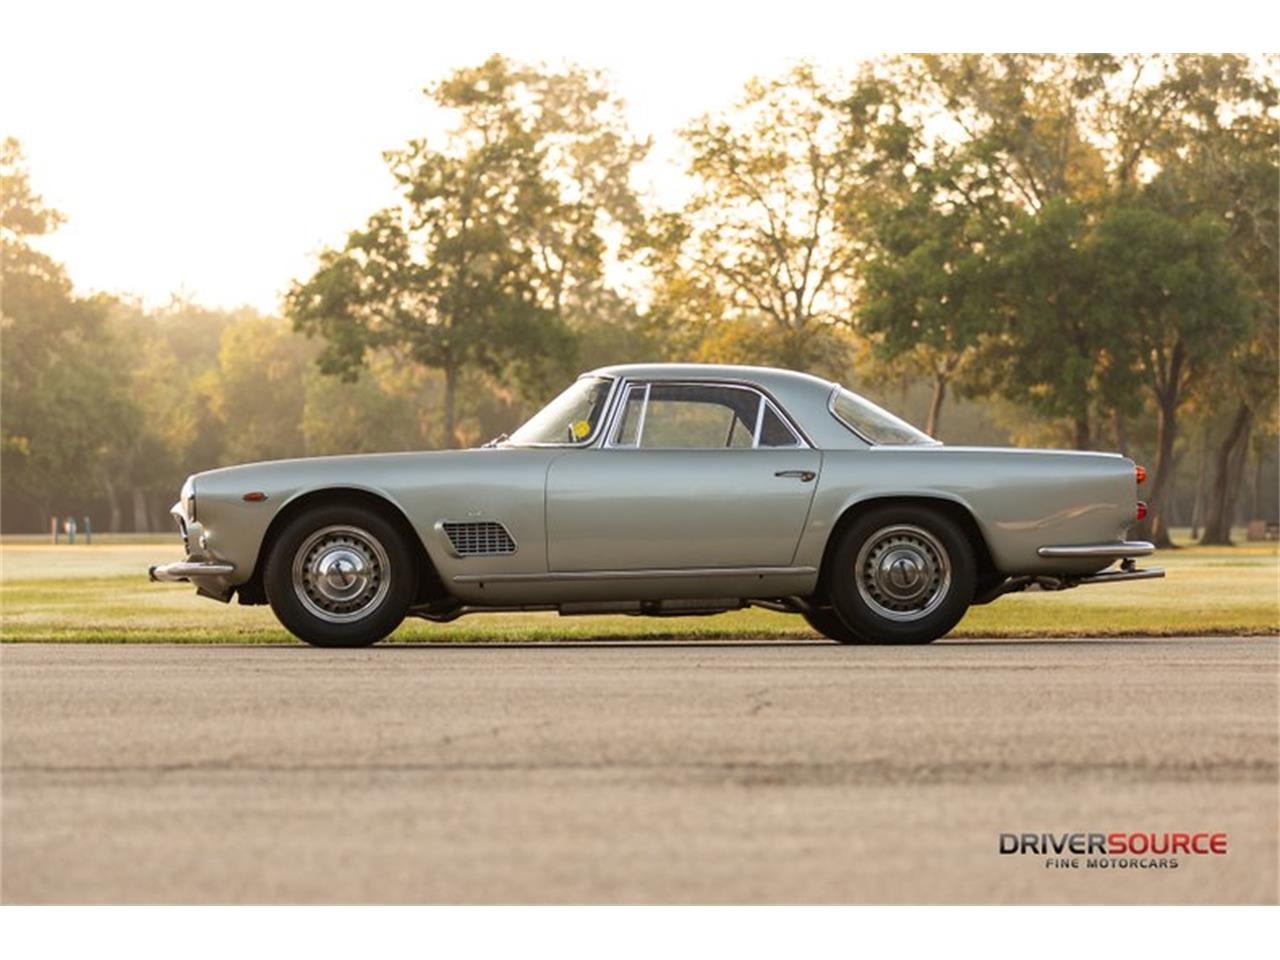 Large Picture of Classic '62 Maserati 3500 - $278,500.00 Offered by Driversource - OCR7